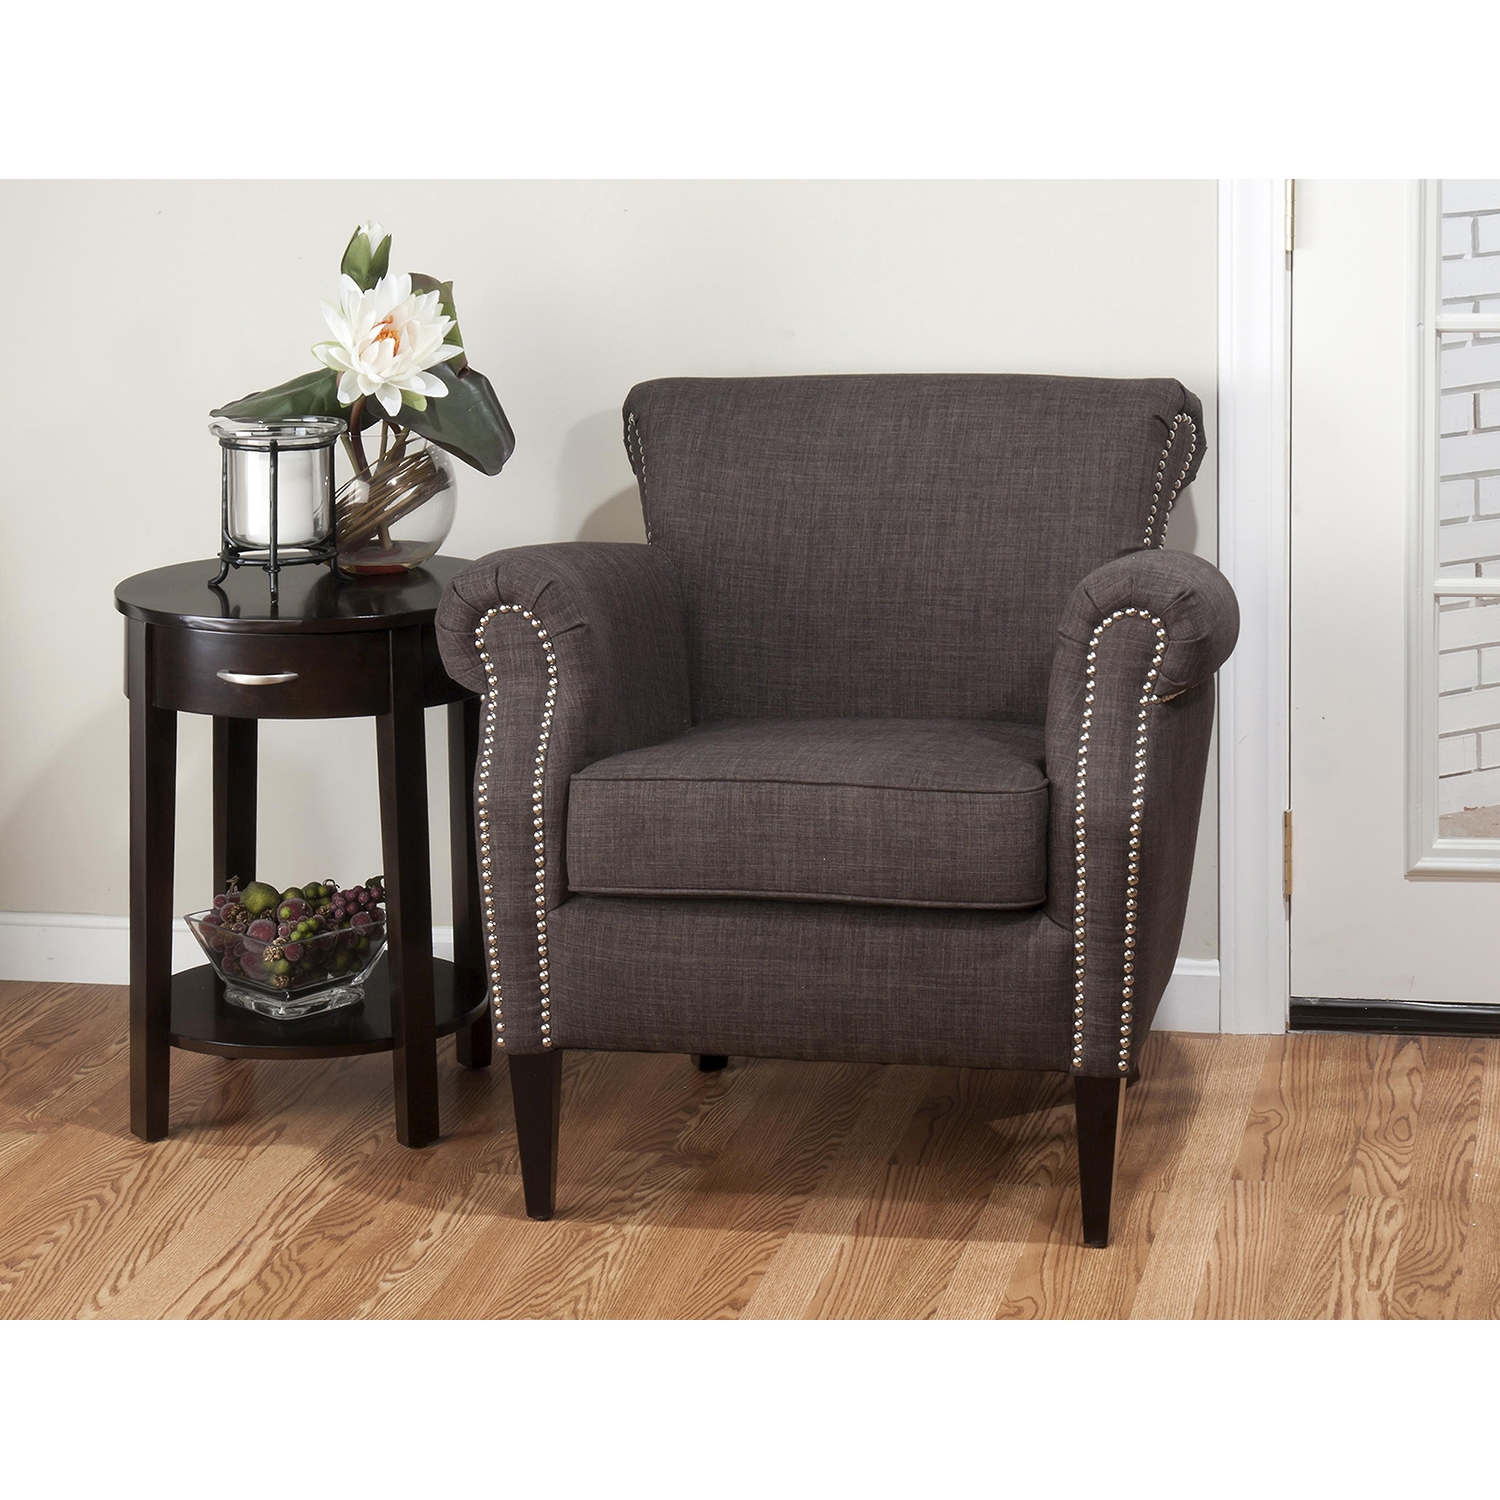 Emma Nailhead Club Chair - Charcoal - JOFR-EMMA-CH-CHARCOAL